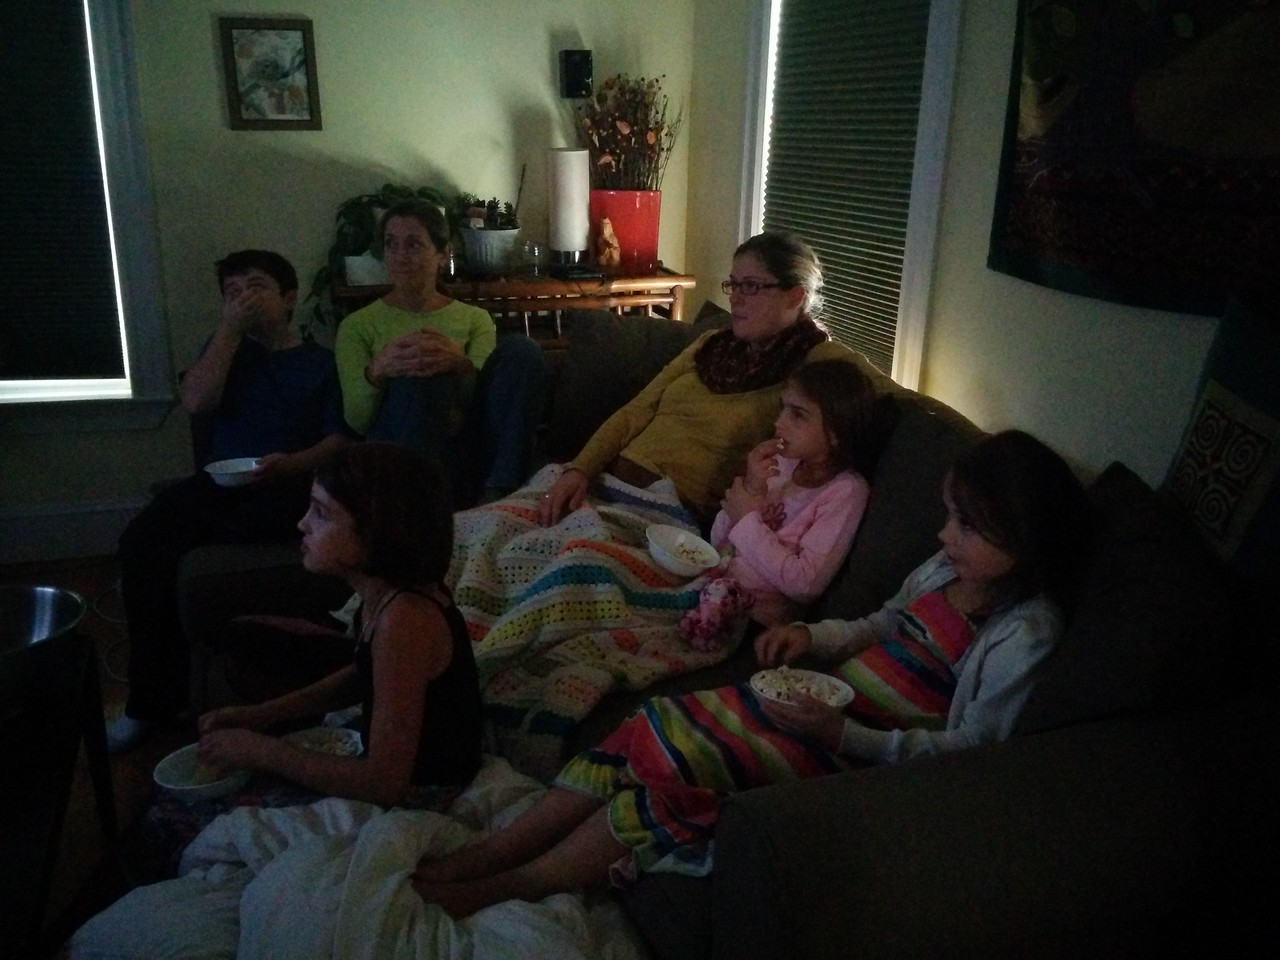 Family movie time!